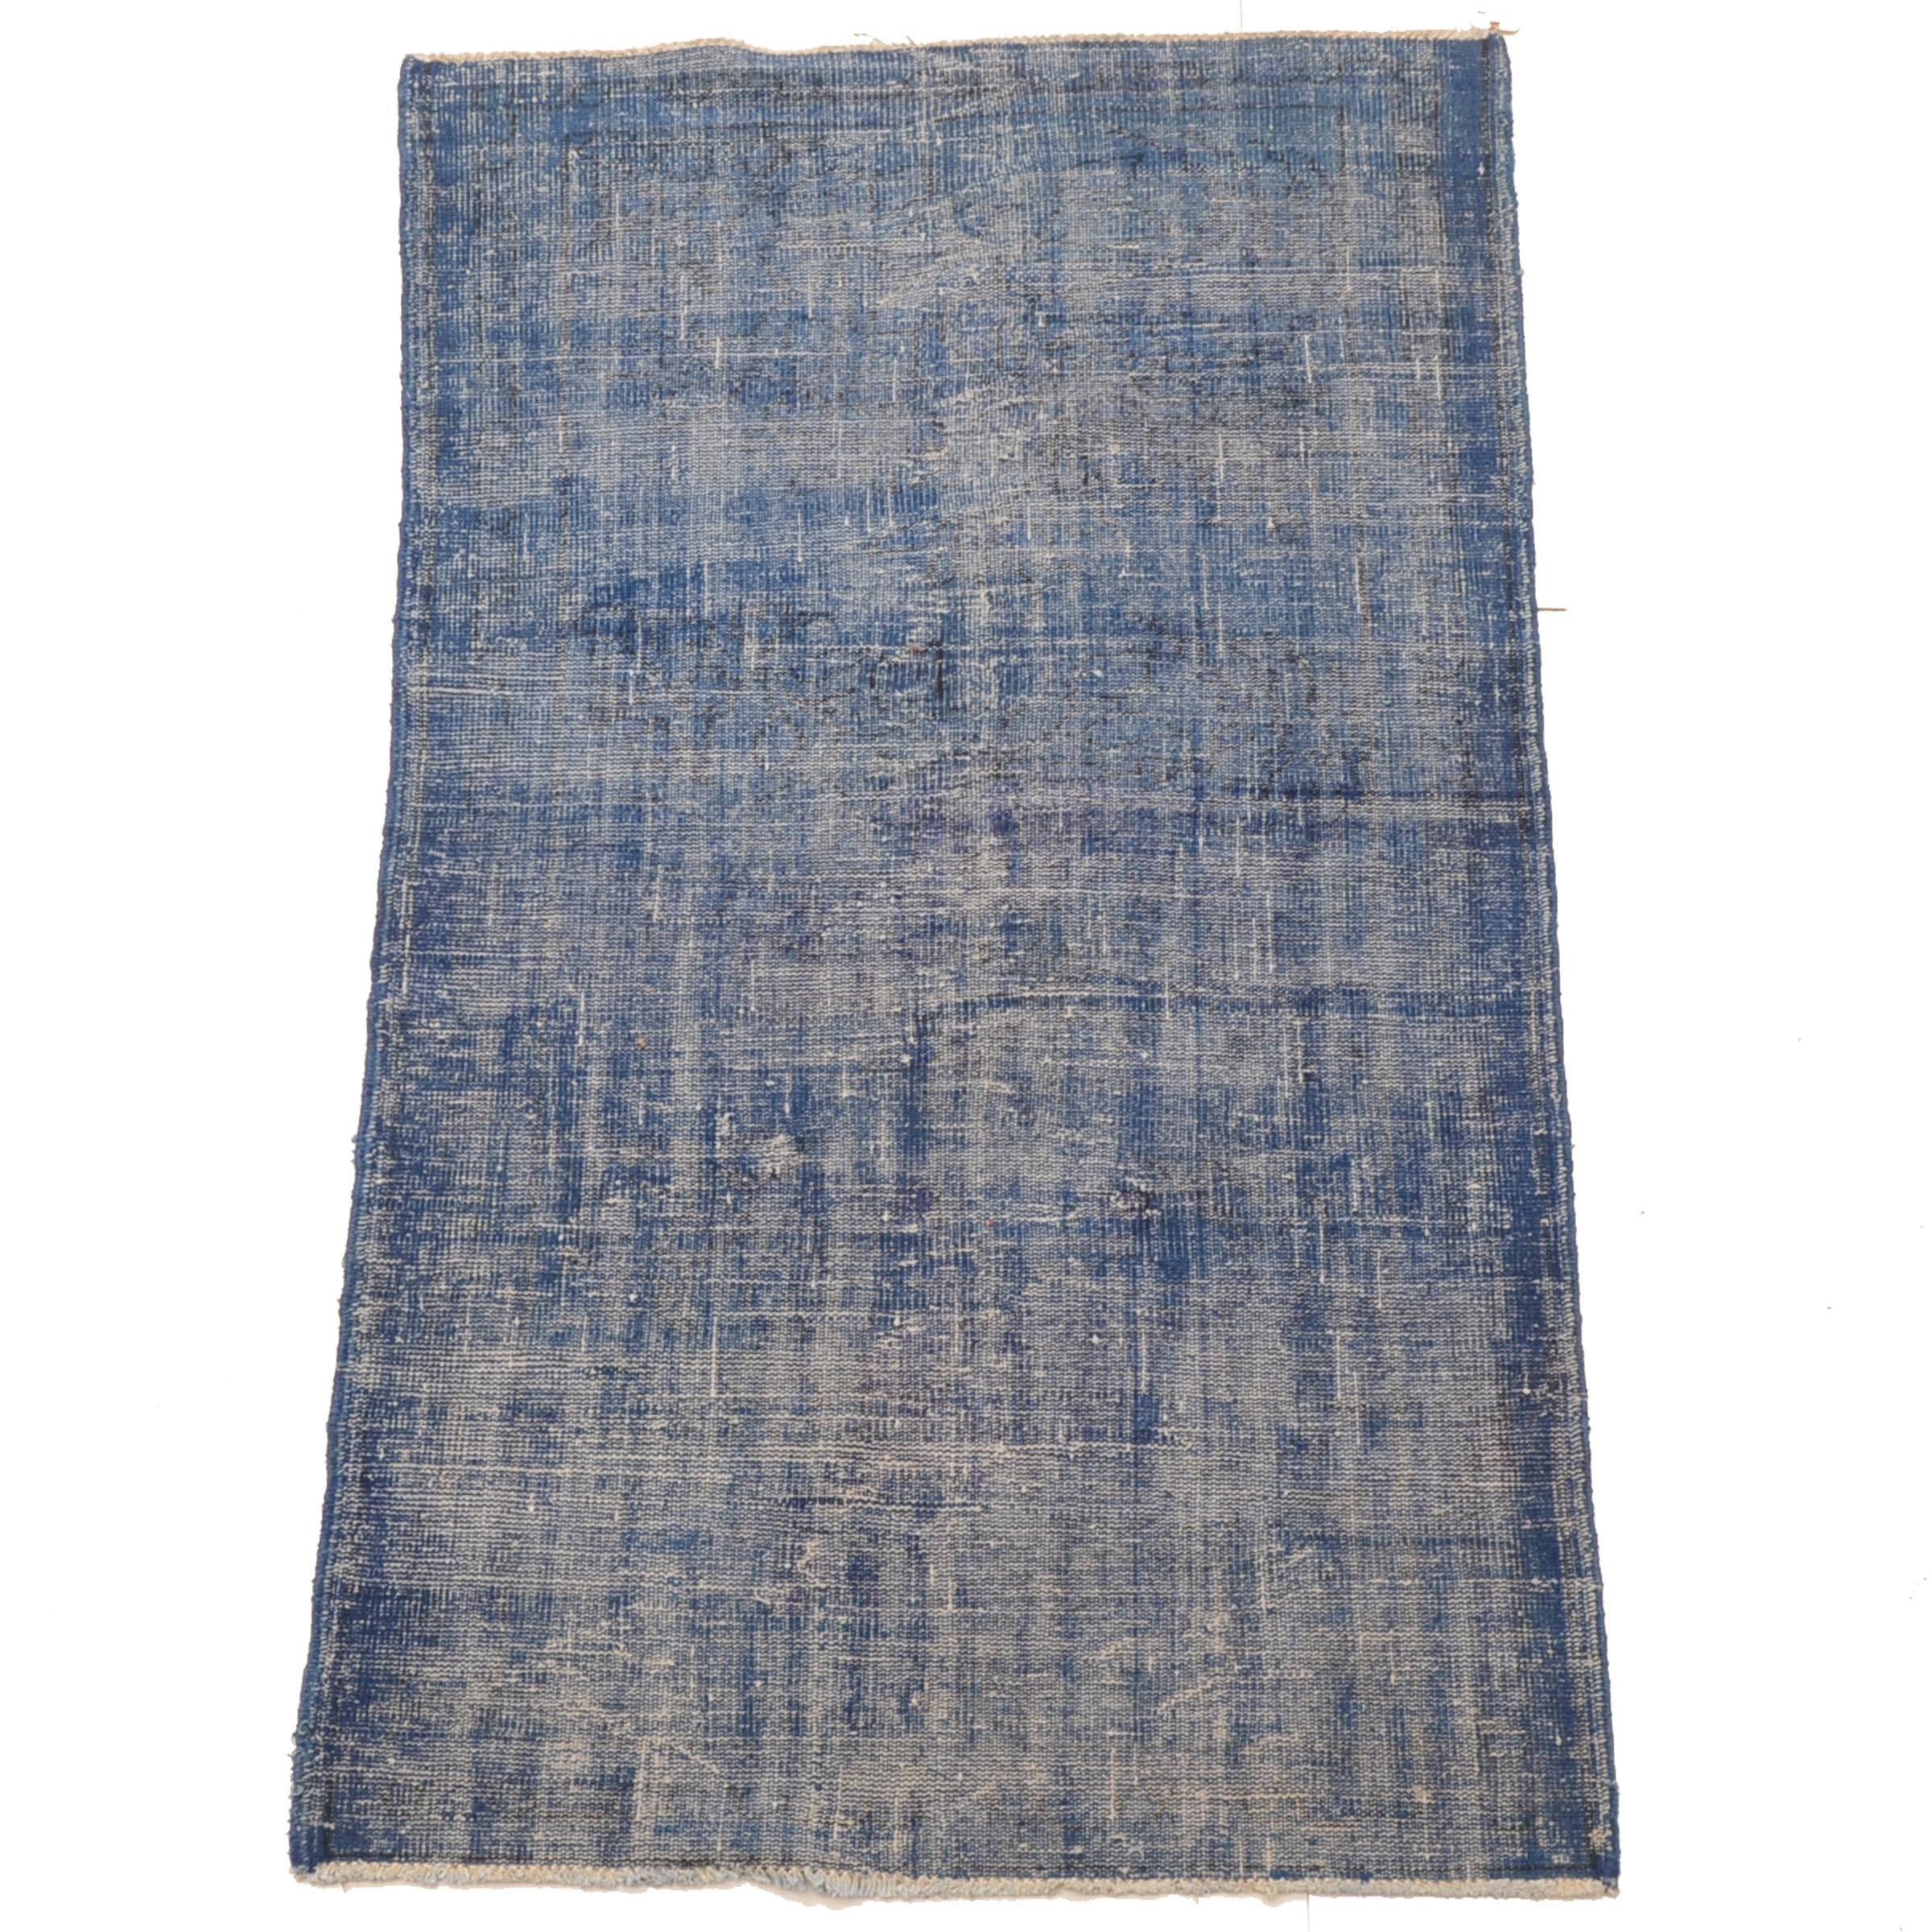 Hand-Knotted Blue Ocean Traders Overdyed Wool Turkish Area Rug